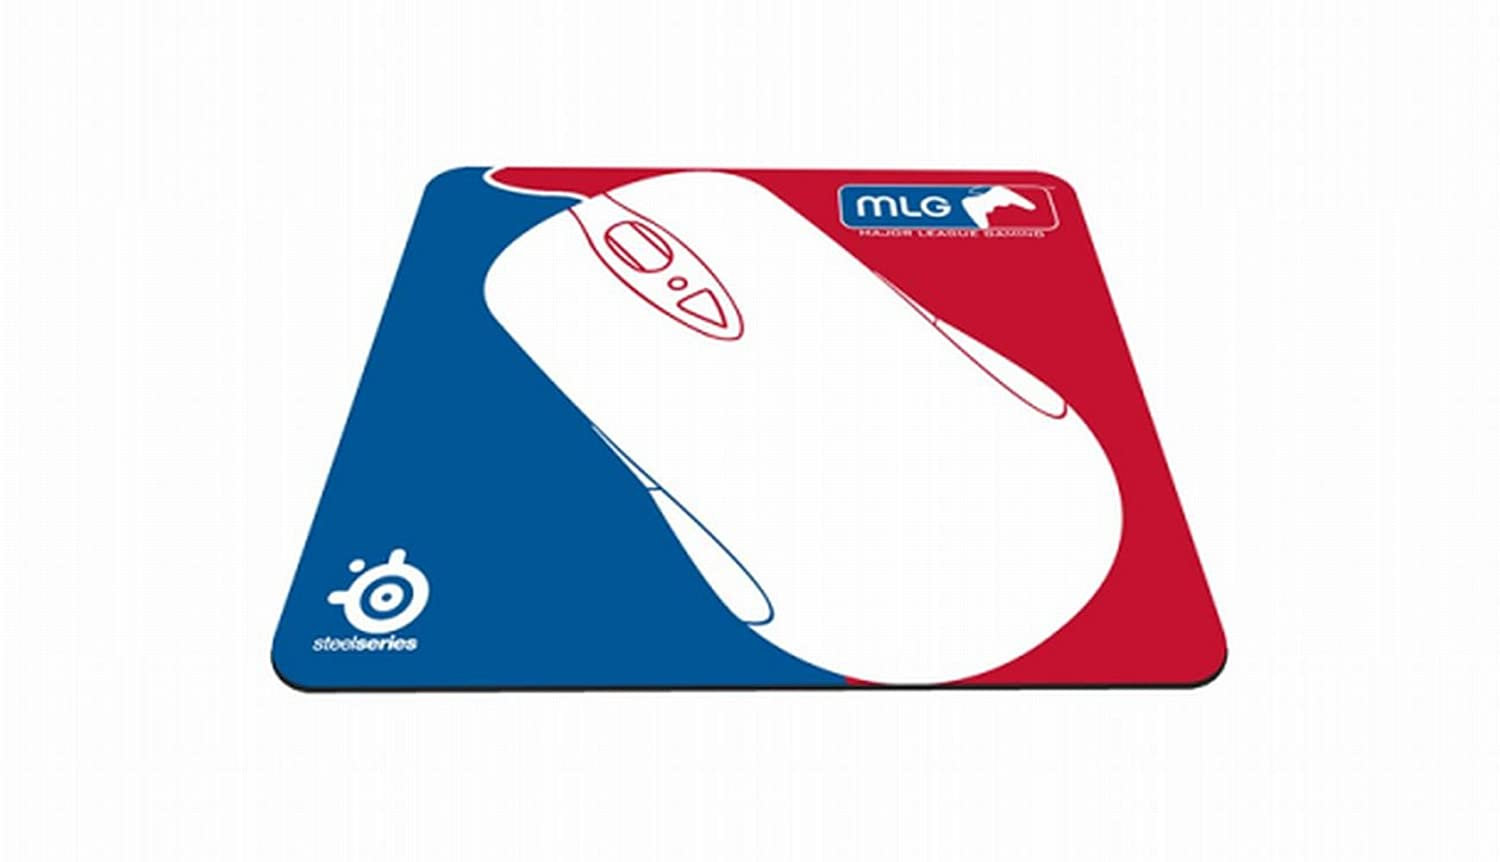 SteelSeries QCK+ Gaming Mouse Pad - MLG BlueRed Edition